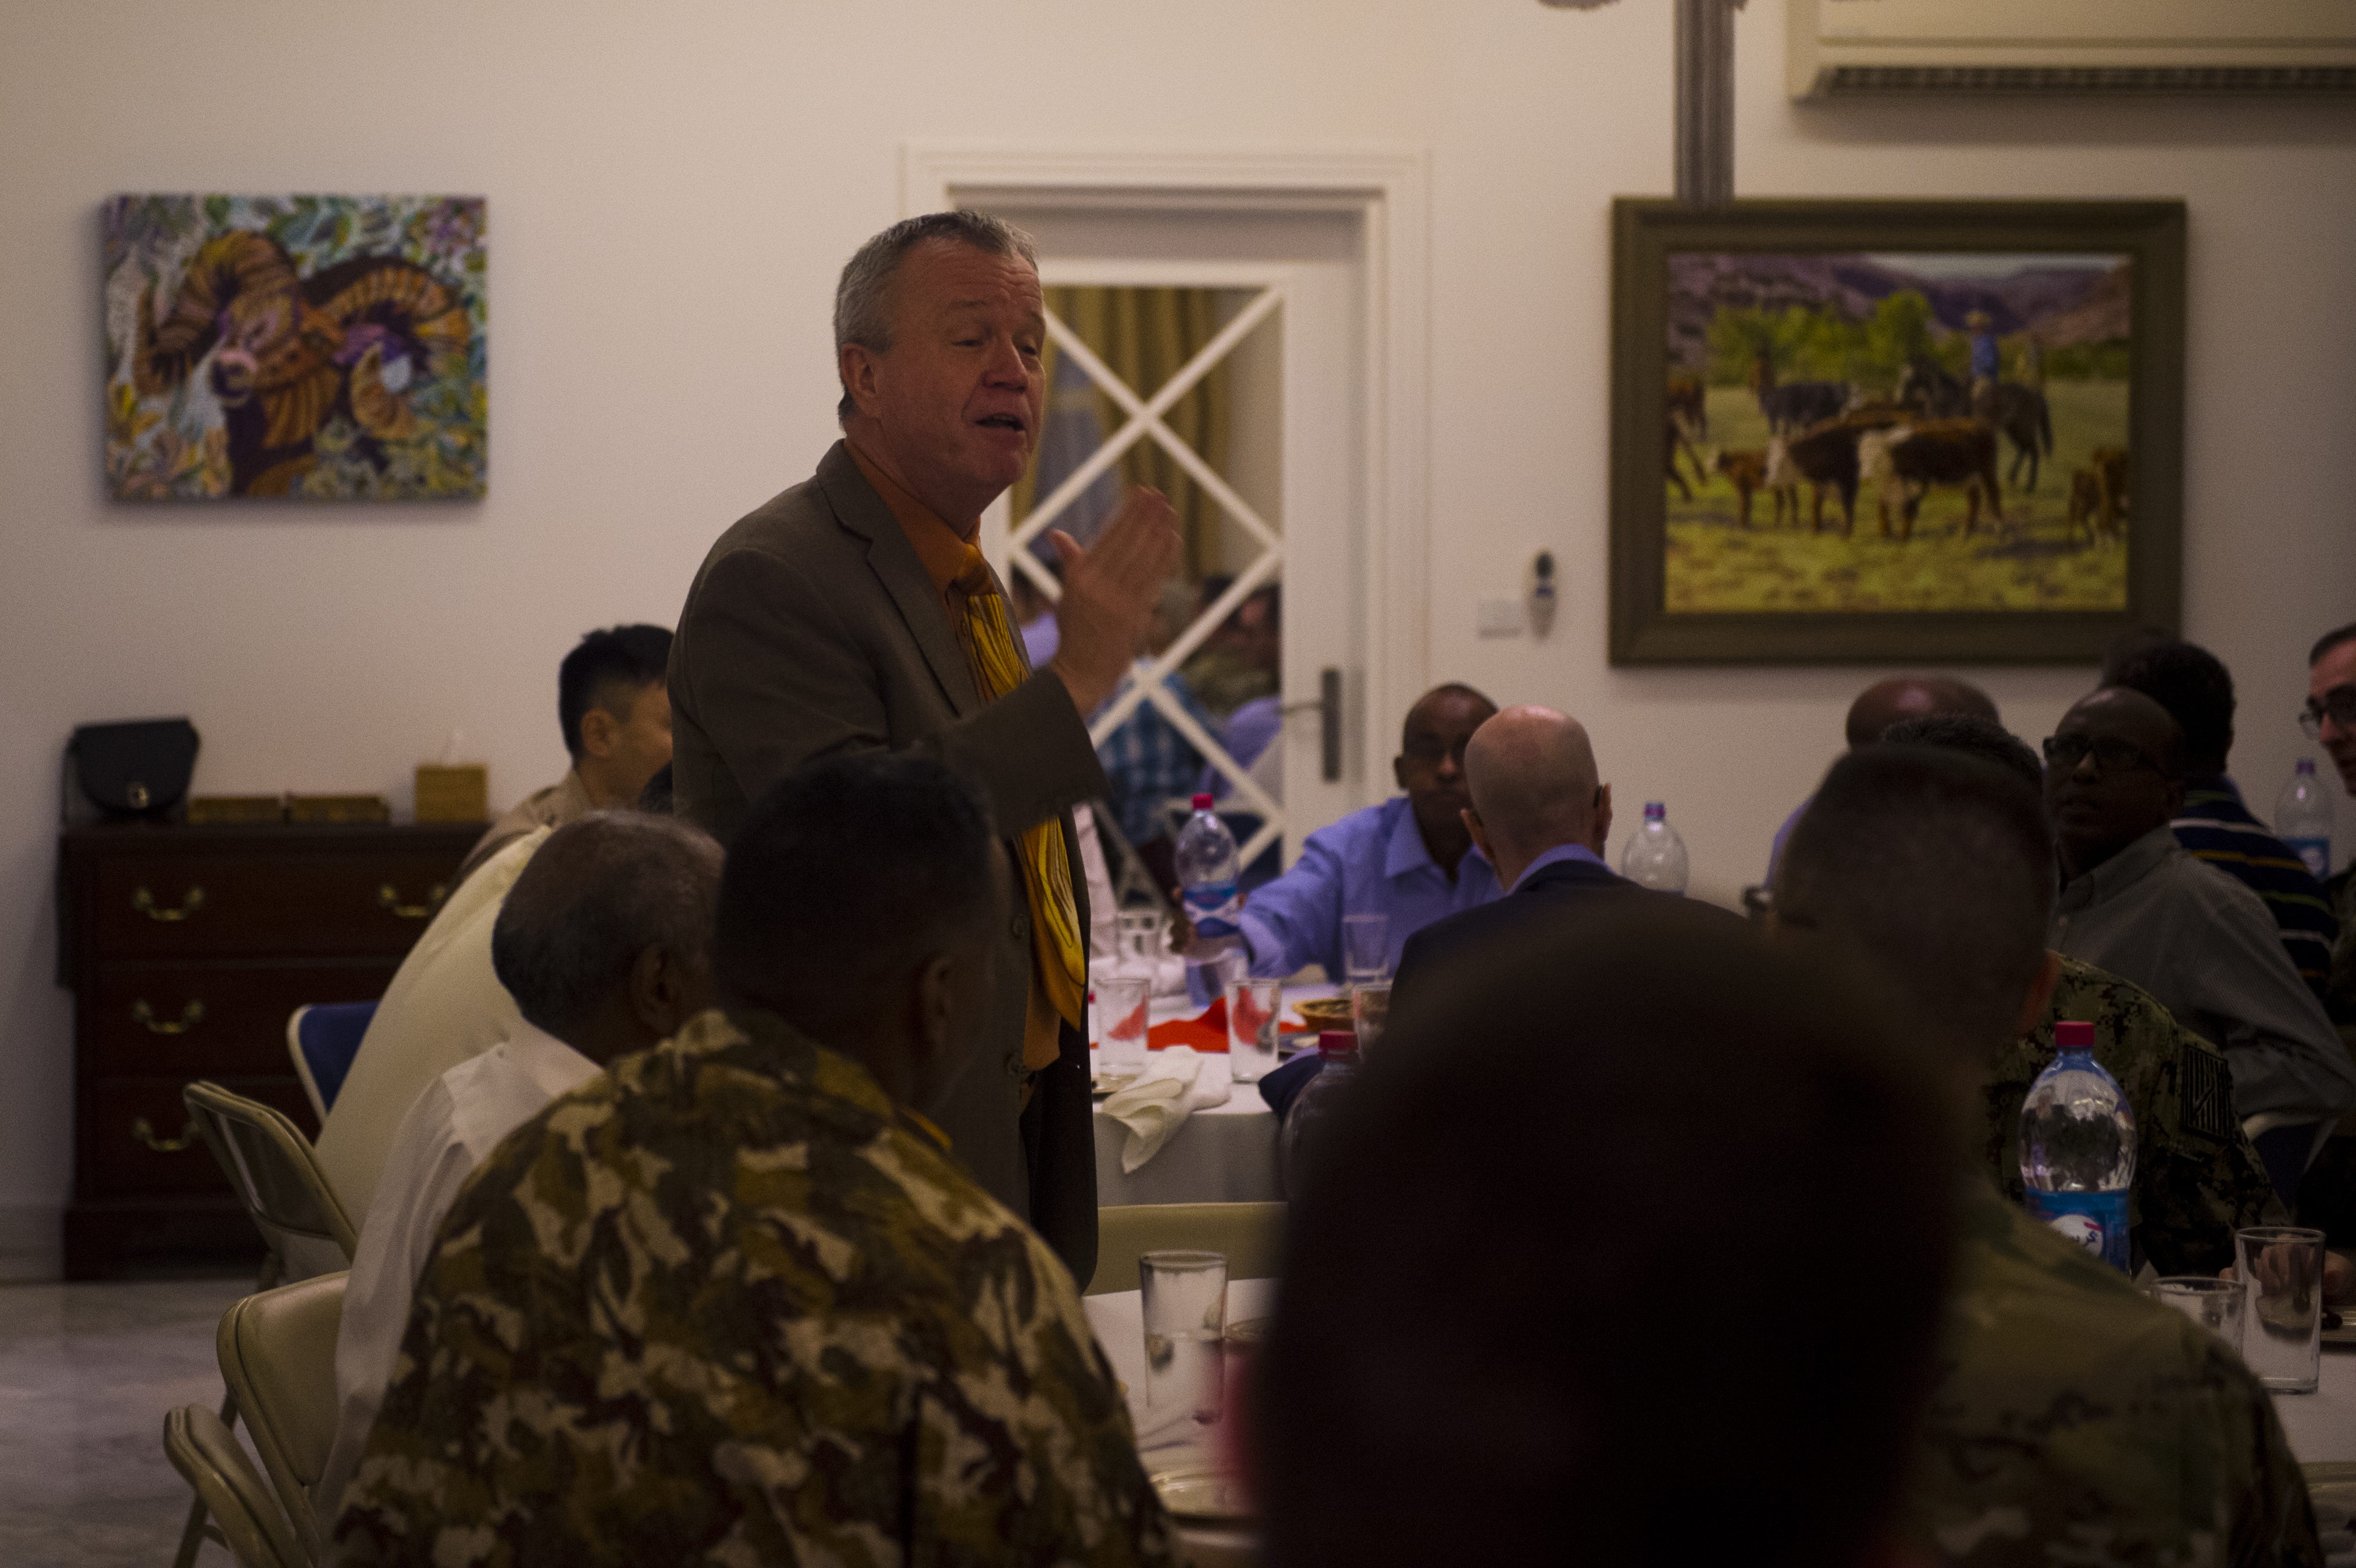 U.S. Ambassador to the Republic of Djibouti, Larry André, speaks to guests during an Iftar at his home in Djibouti, May 22, 2018. André opened his home to celebrate two Iftars, one run by the Defense Attaché Office for senior Diboutian Military and security leaders, the second for senior government, diplomatic, and business leaders.. (U.S. Air Force photo by Senior Airman Scott Jackson)